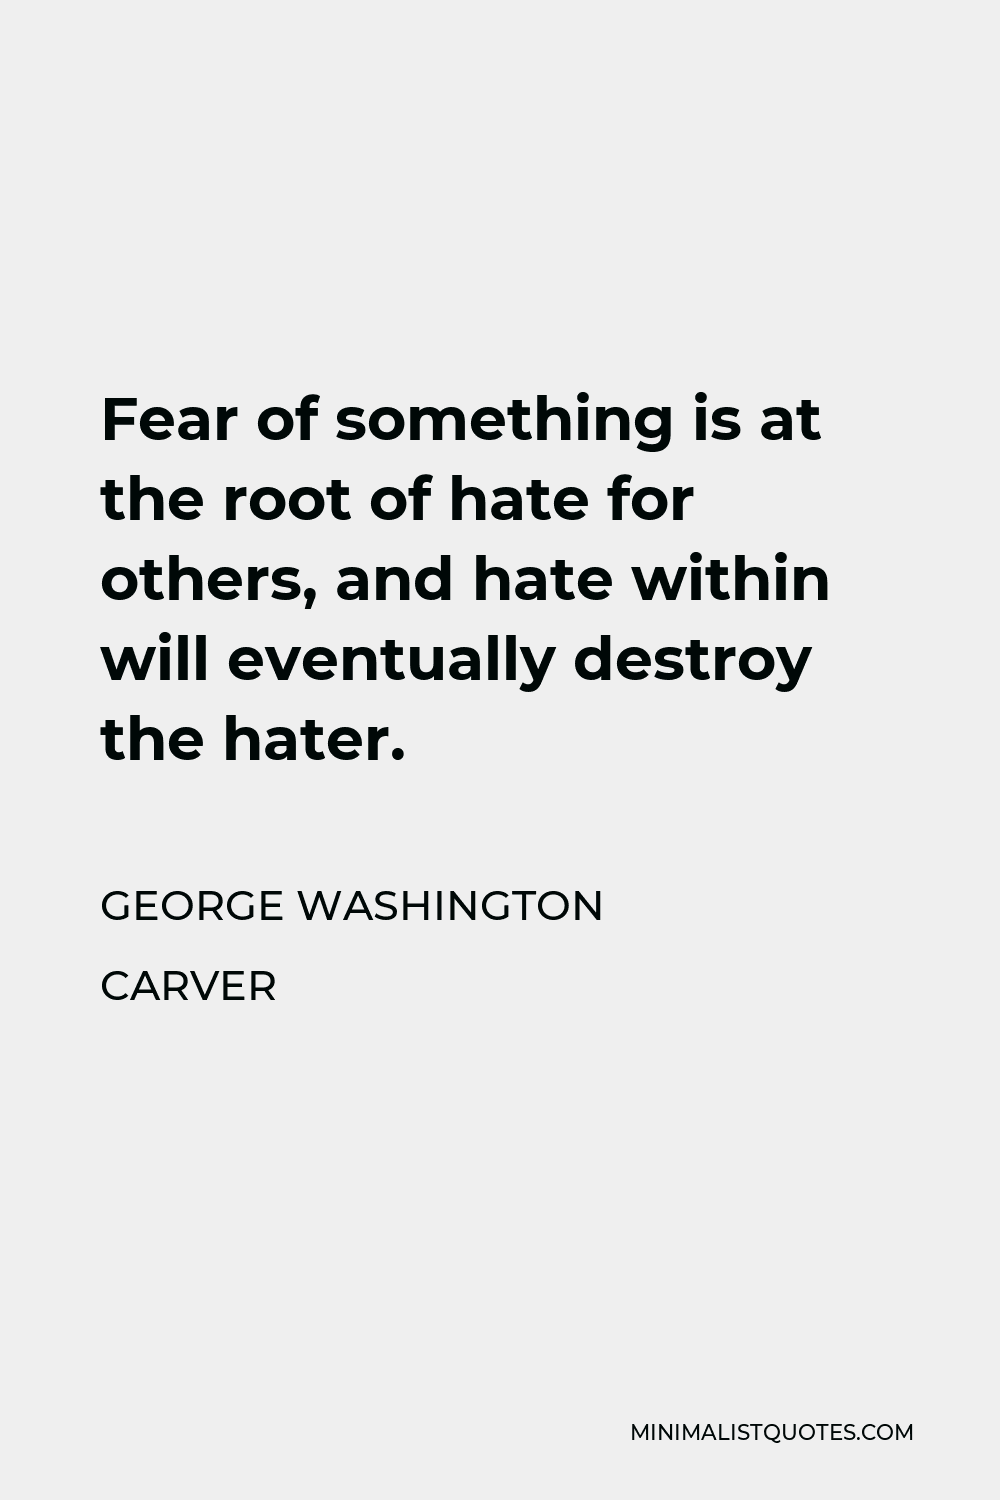 George Washington Carver Quote - Fear of something is at the root of hate for others, and hate within will eventually destroy the hater.